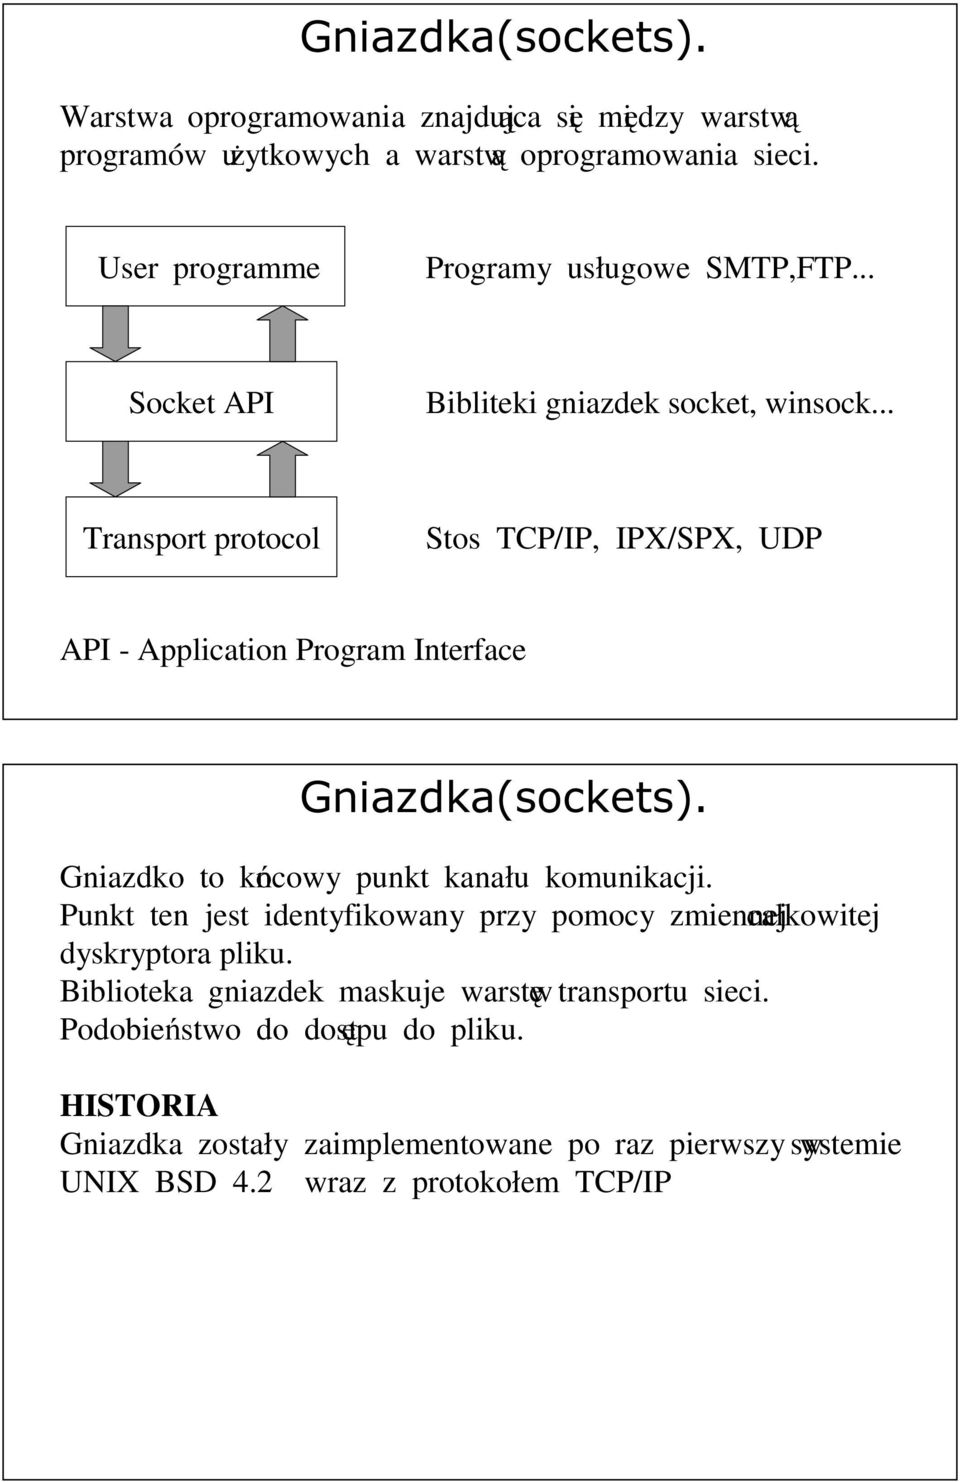 .. Transport protocol Stos TCP/IP, IPX/SPX, UDP API - Application Program Interface Gniazdka(sockets). Gniazdko to końcowy punkt kanału komunikacji.